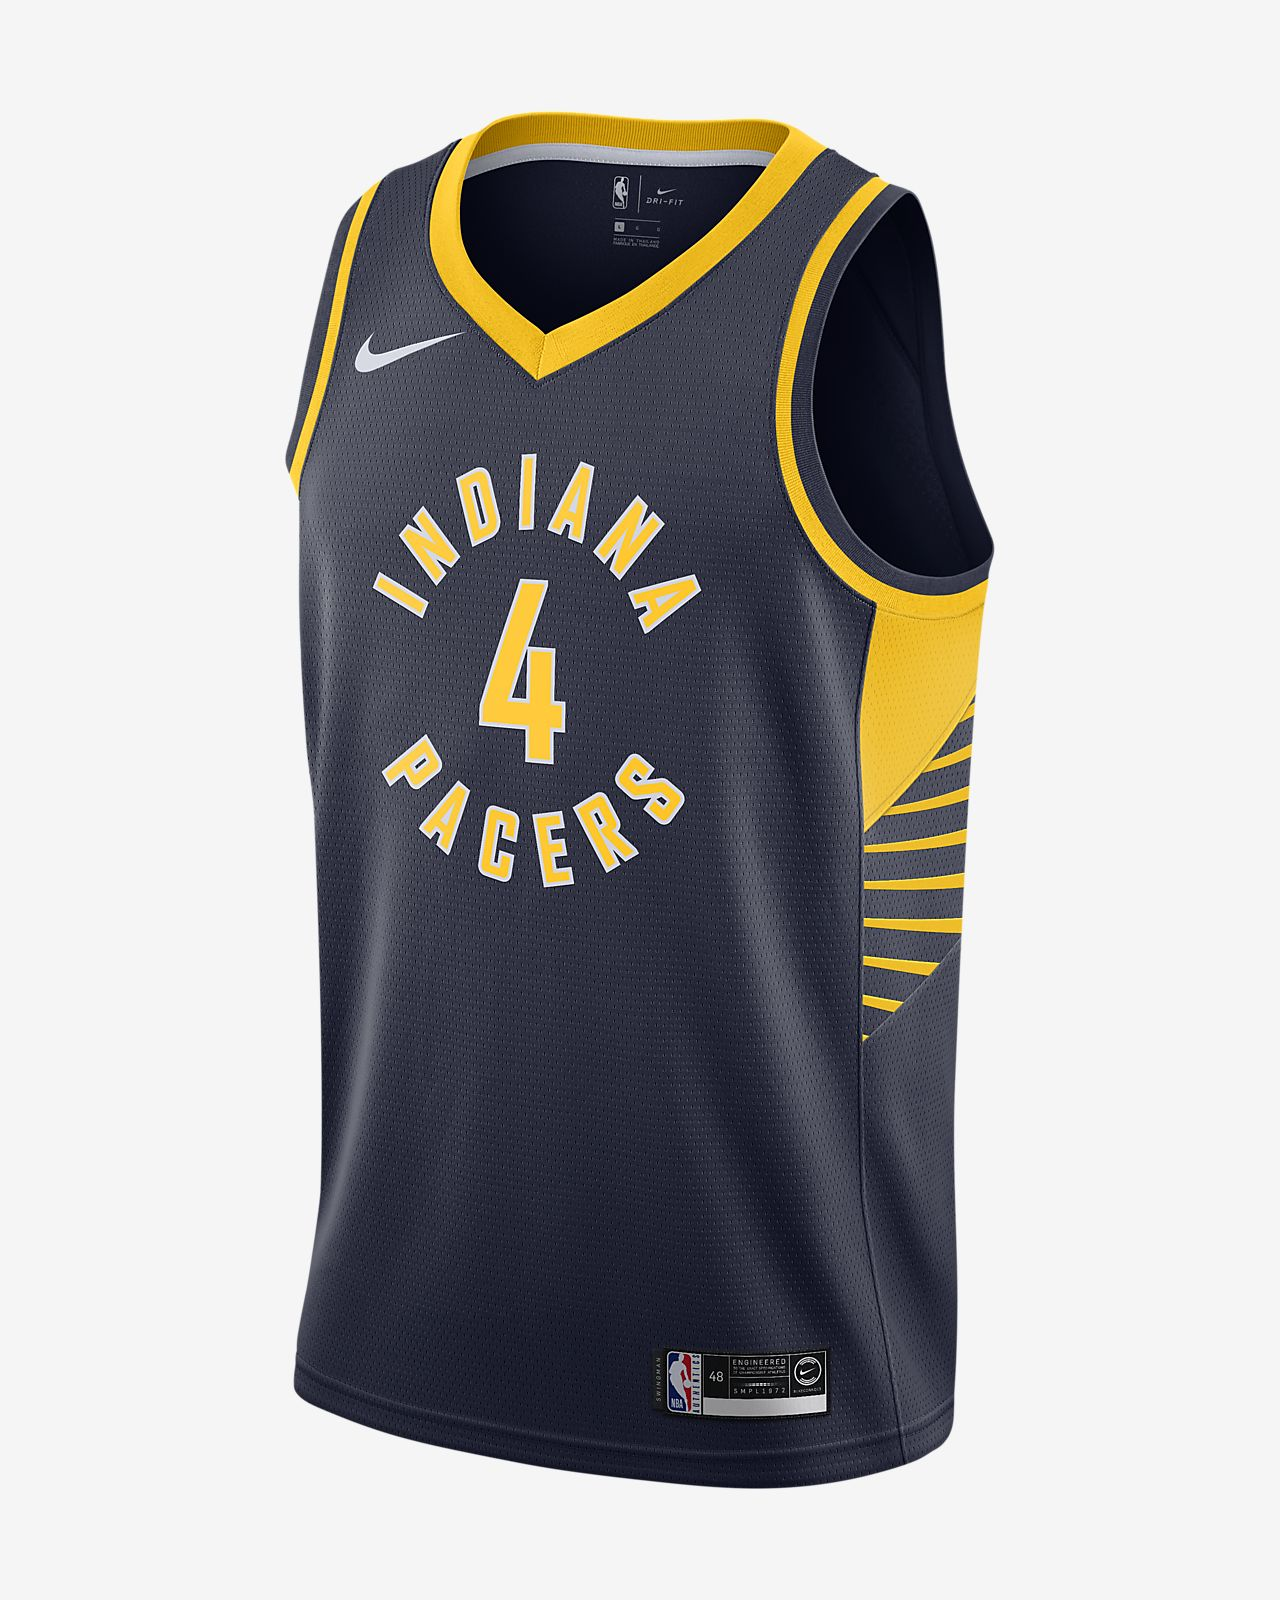 be7aba3e39f Men s Nike NBA Connected Jersey. Victor Oladipo Icon Edition Swingman (Indiana  Pacers)